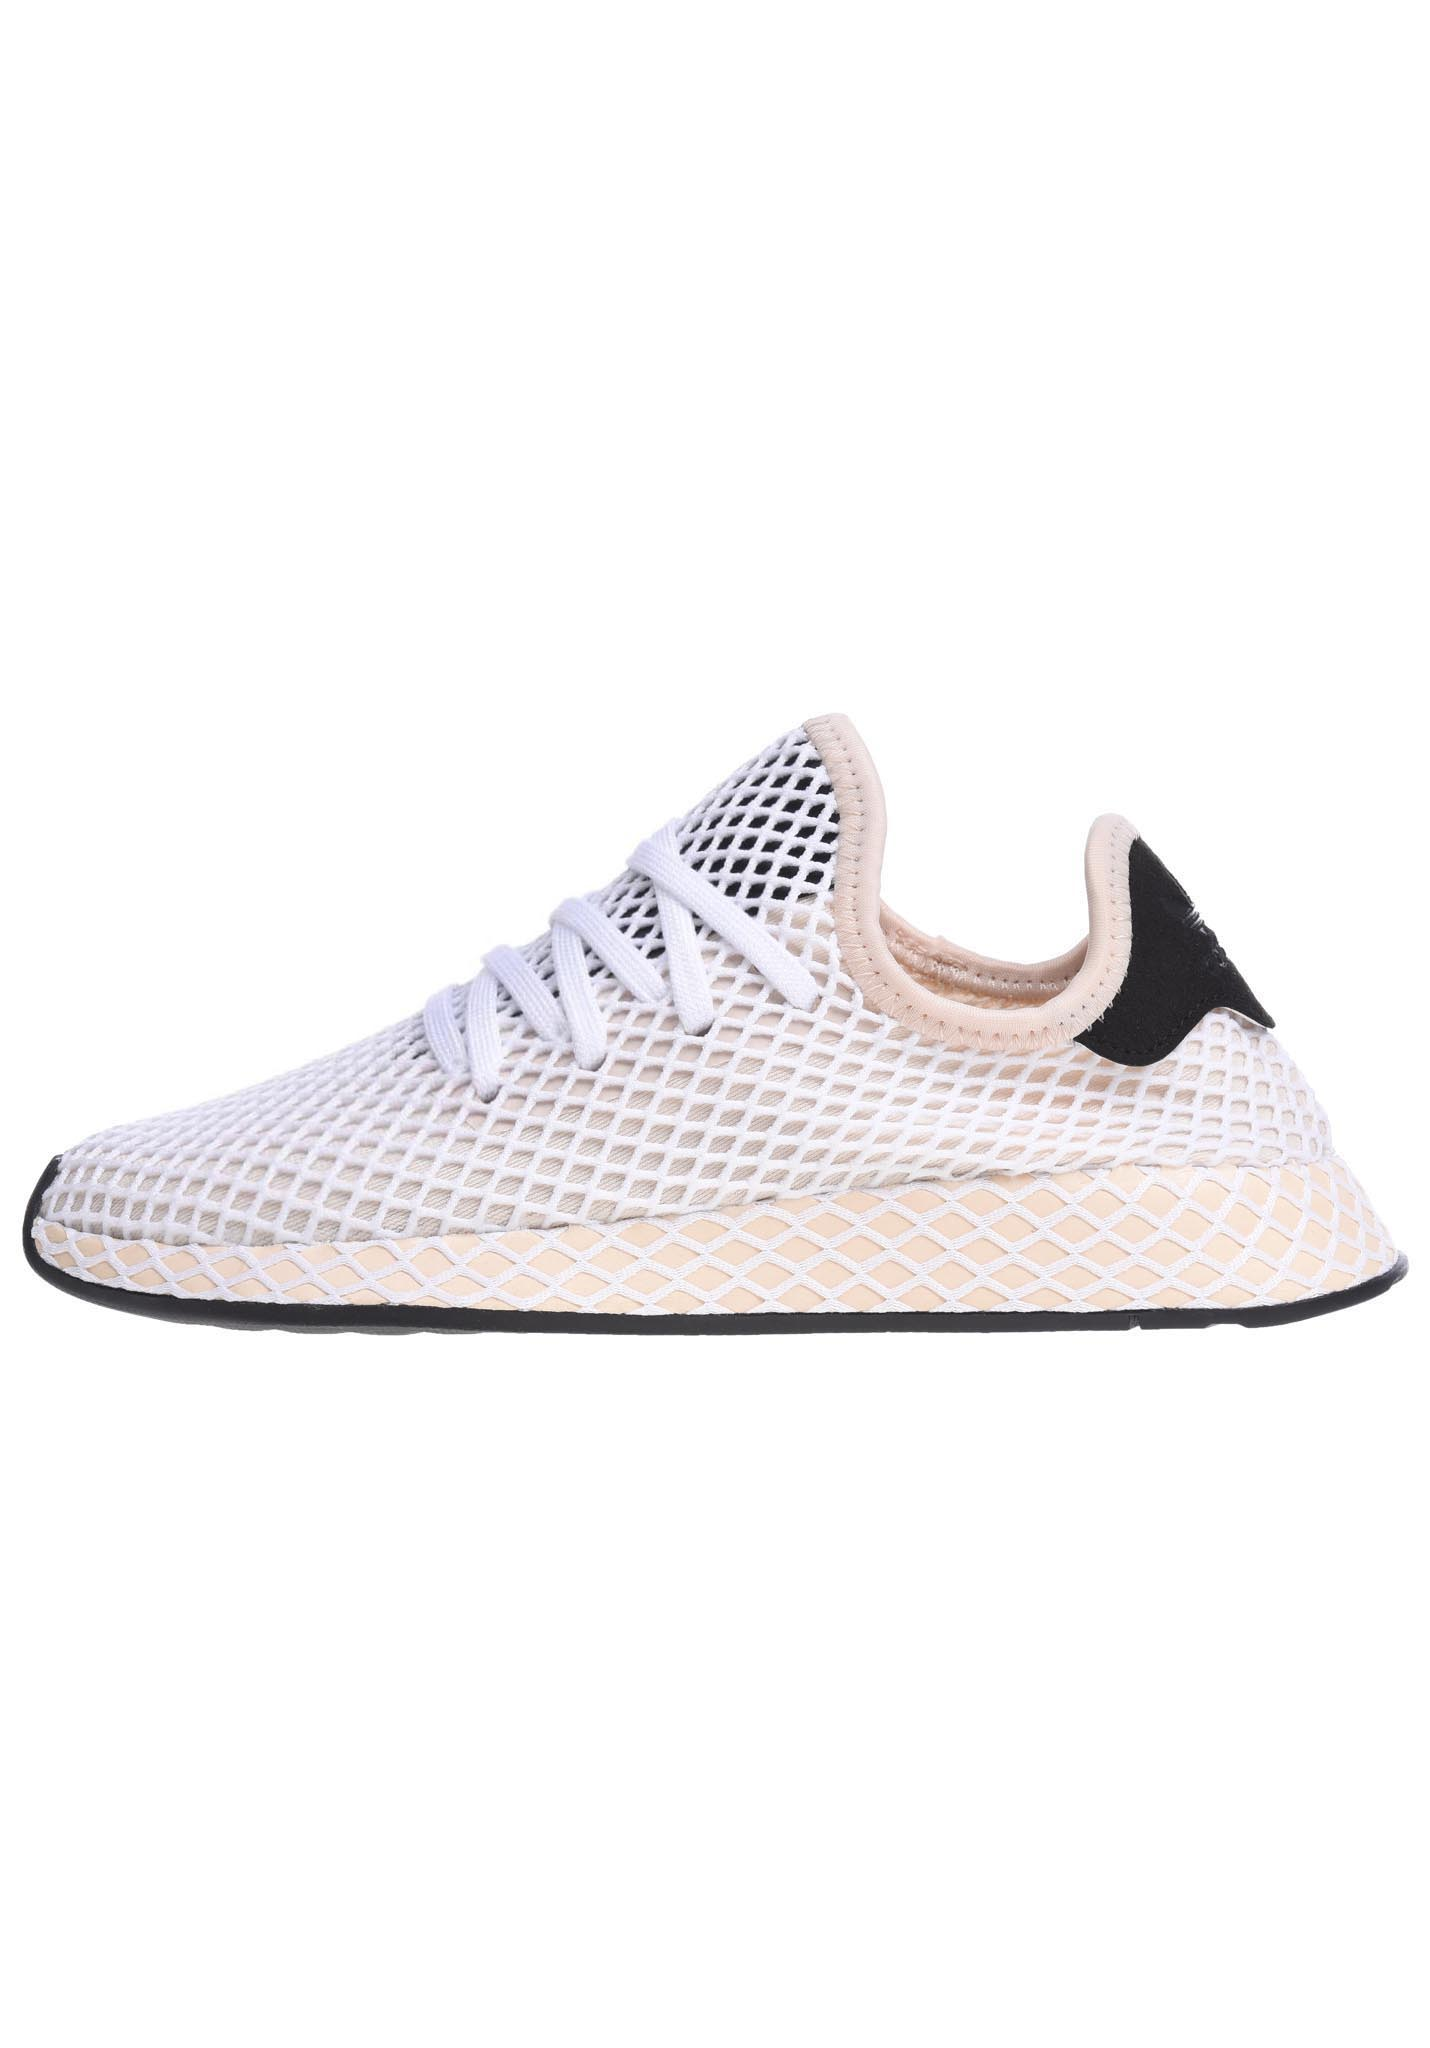 a15468d2f ADIDAS ORIGINALS Deerupt Runner - Sneakers for Women - White ...